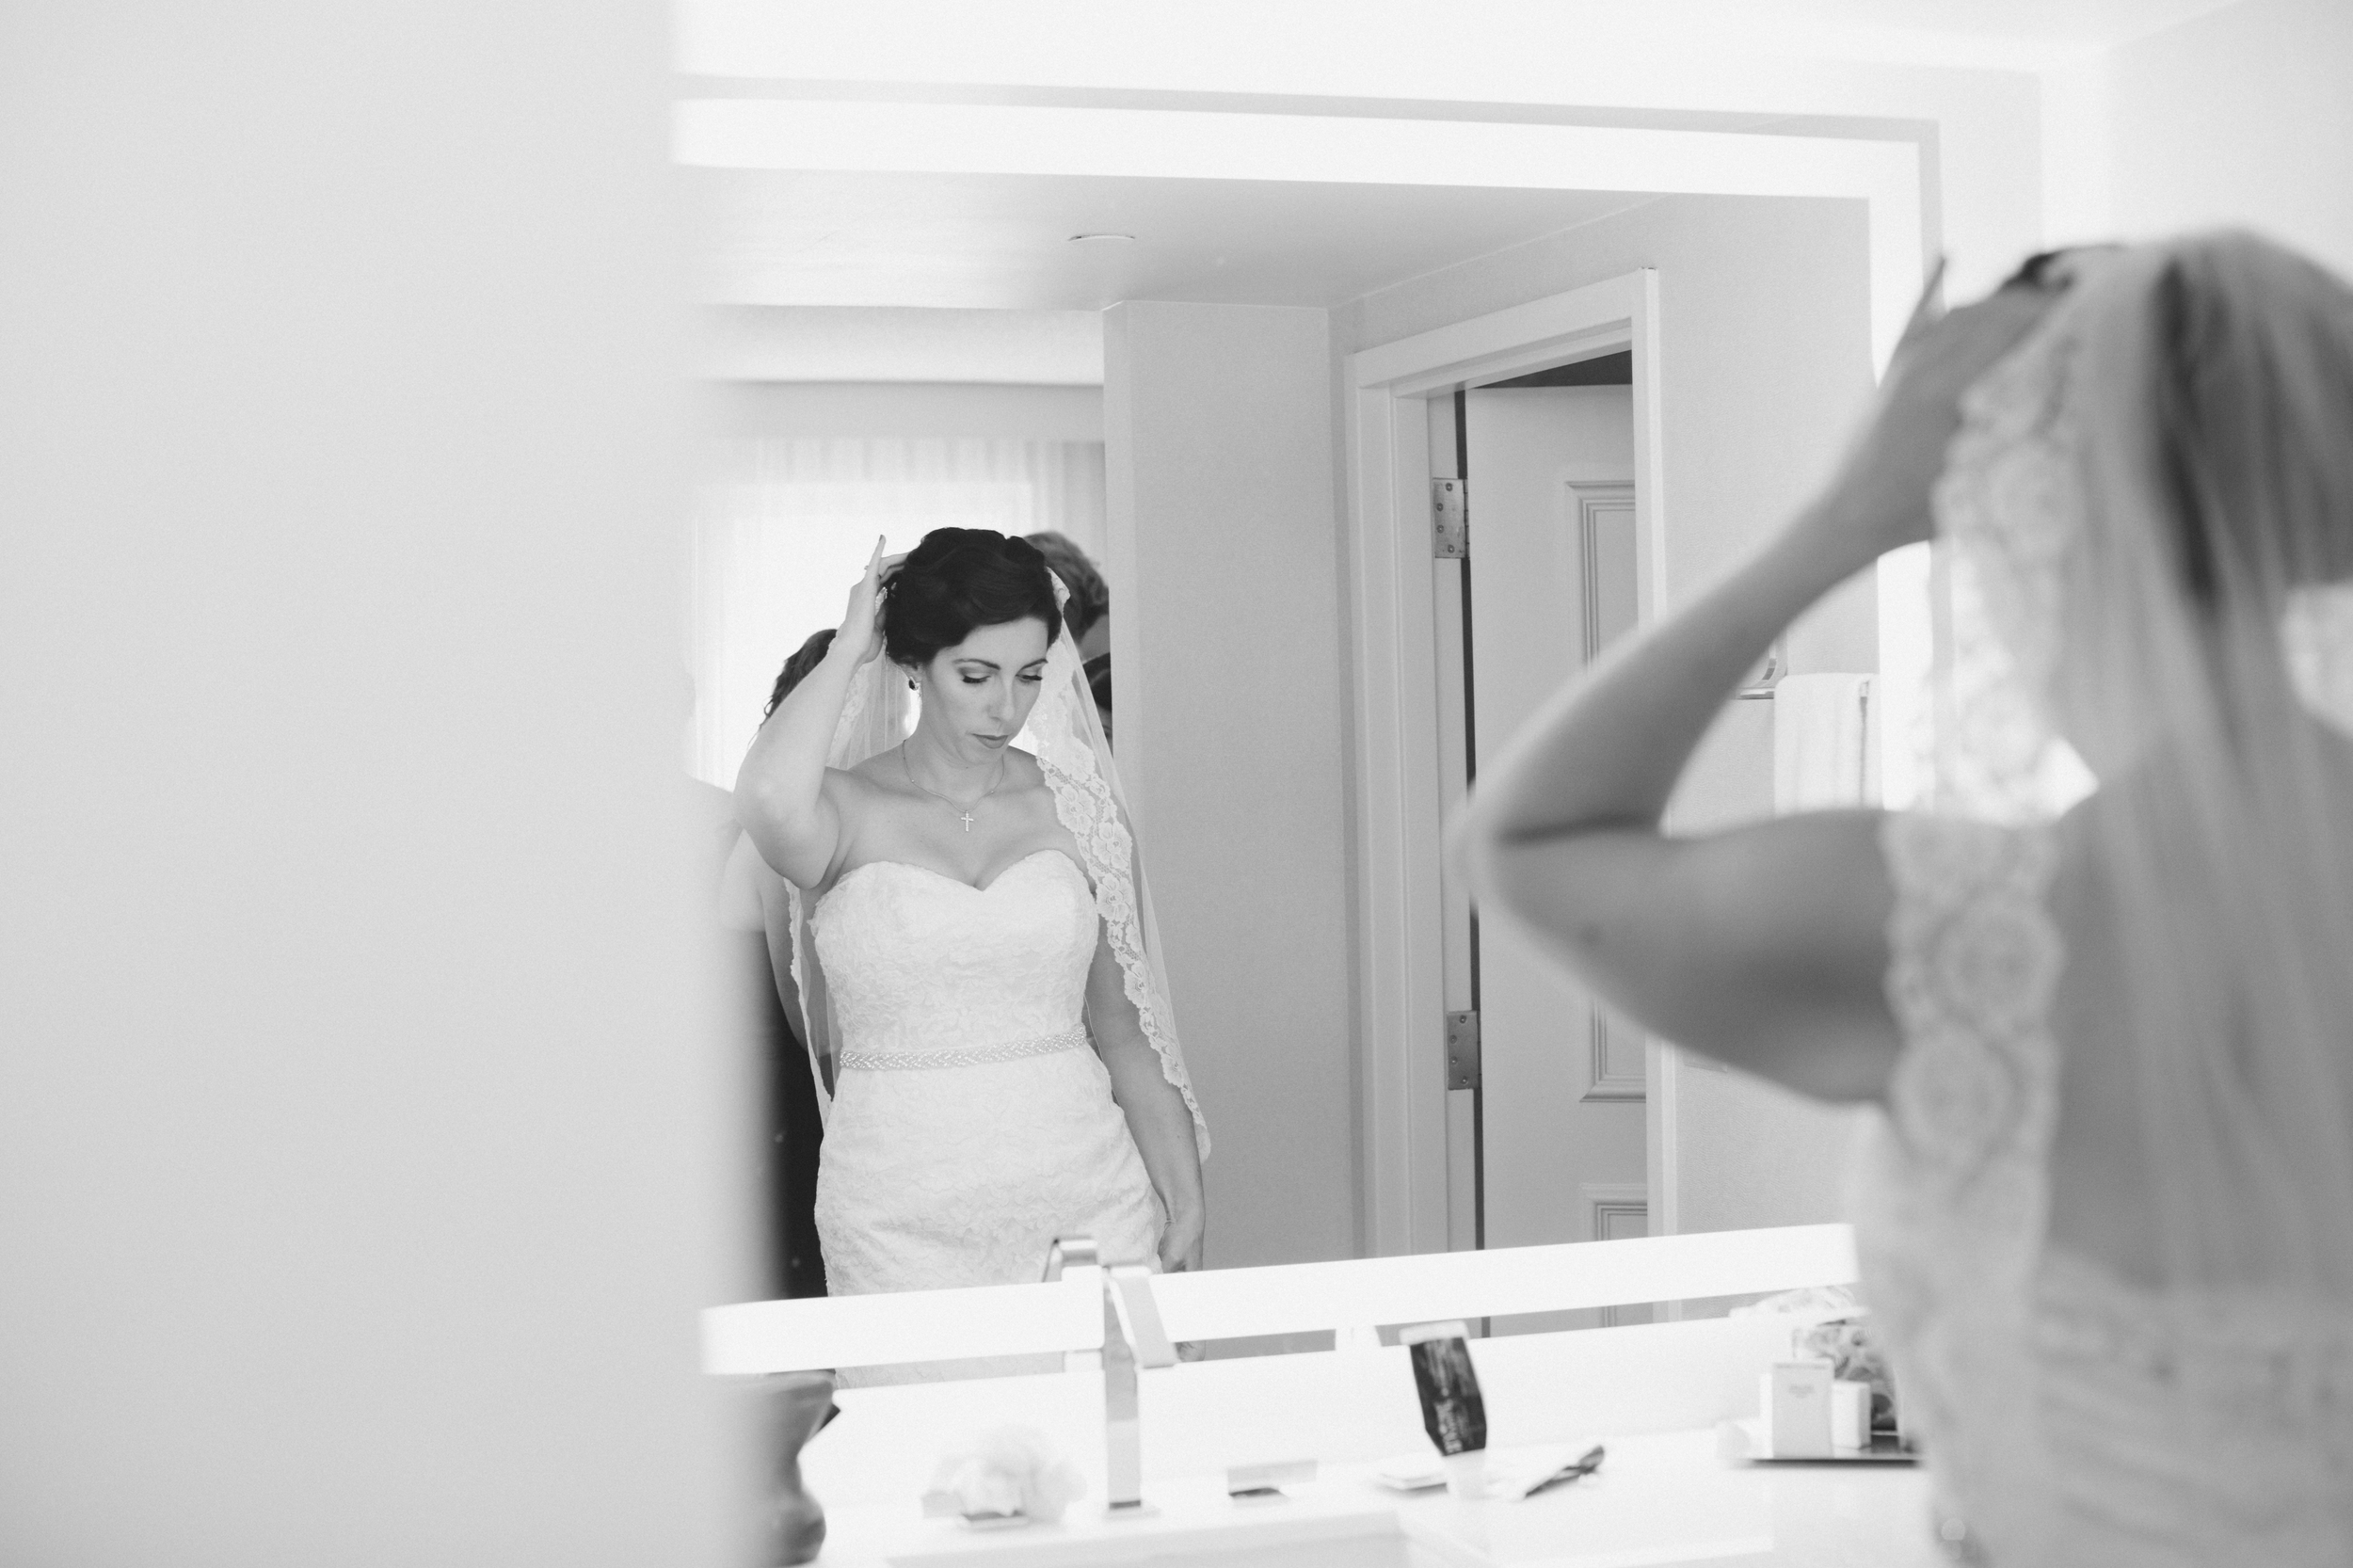 Vness_Photography_Wedding_Photographer_Washington-DC_Fish_Wedding-171.JPG